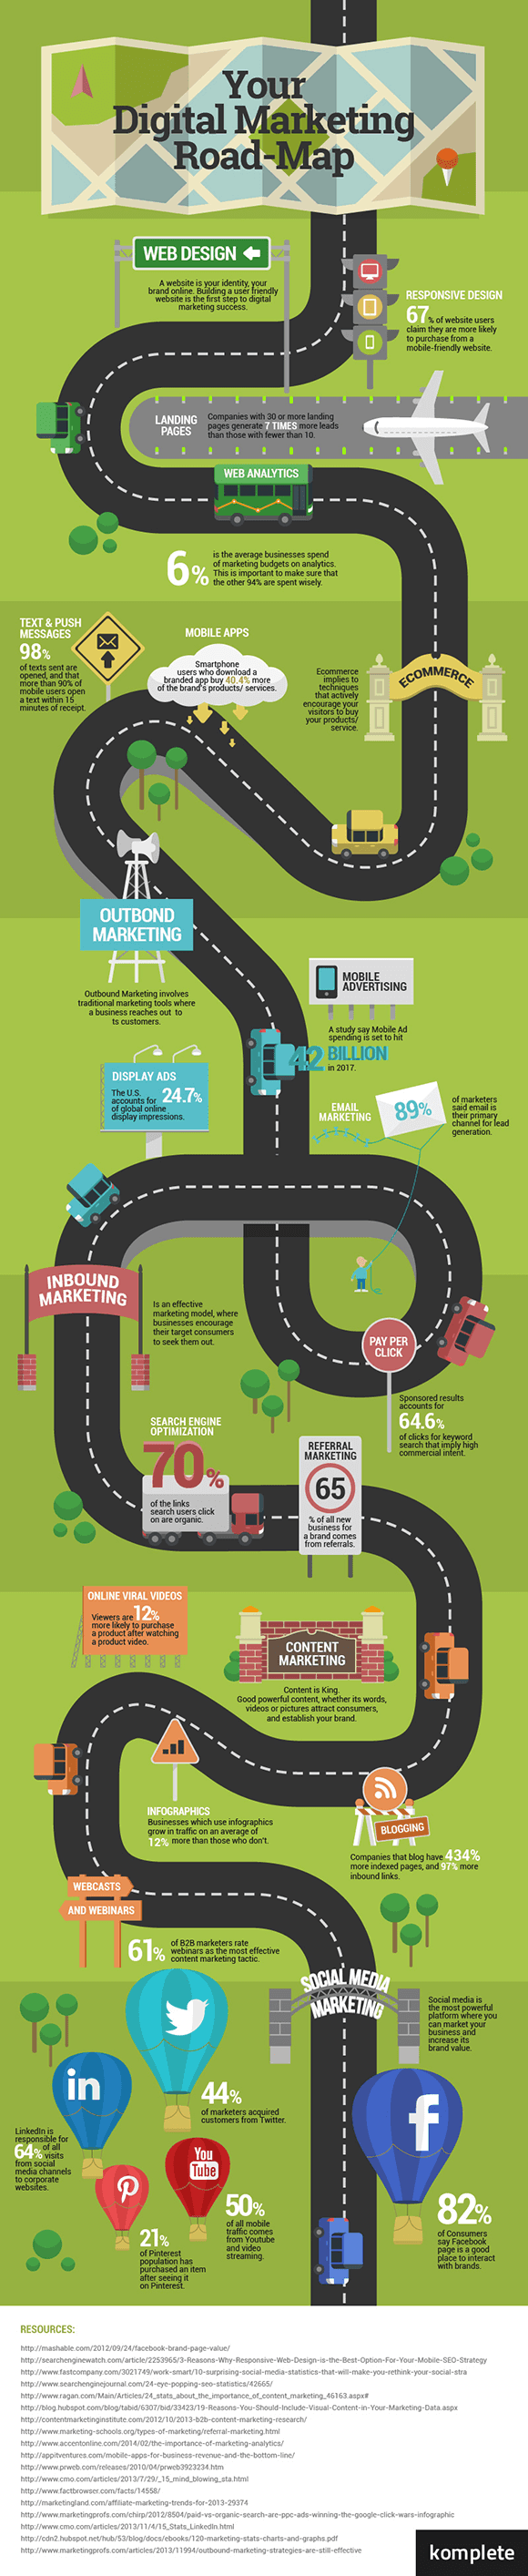 Digital Marketing Road-Map Infographic